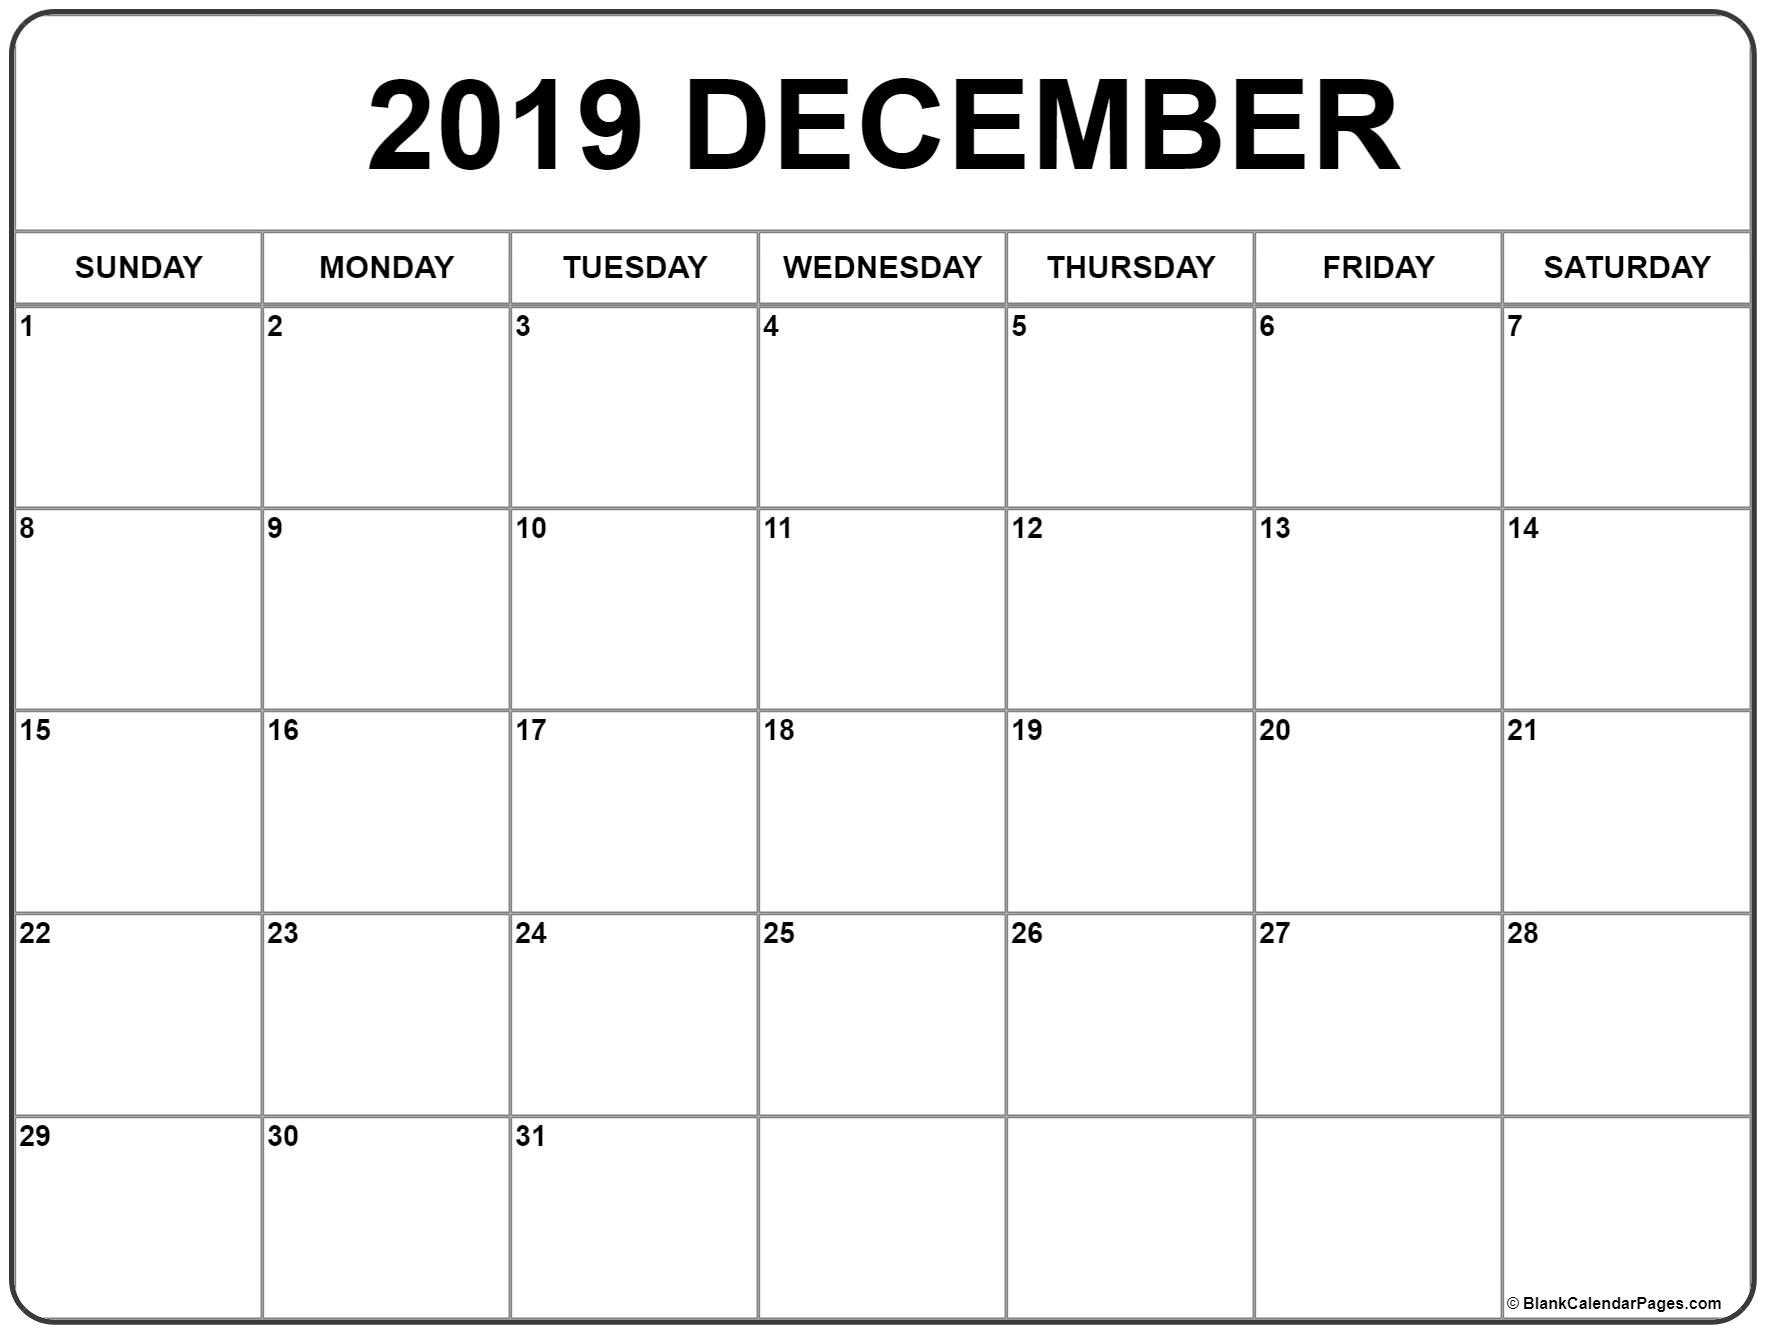 December 2019 Calendar | 56+ Templates Of 2019 Printable Calendars Calendar 2019 December